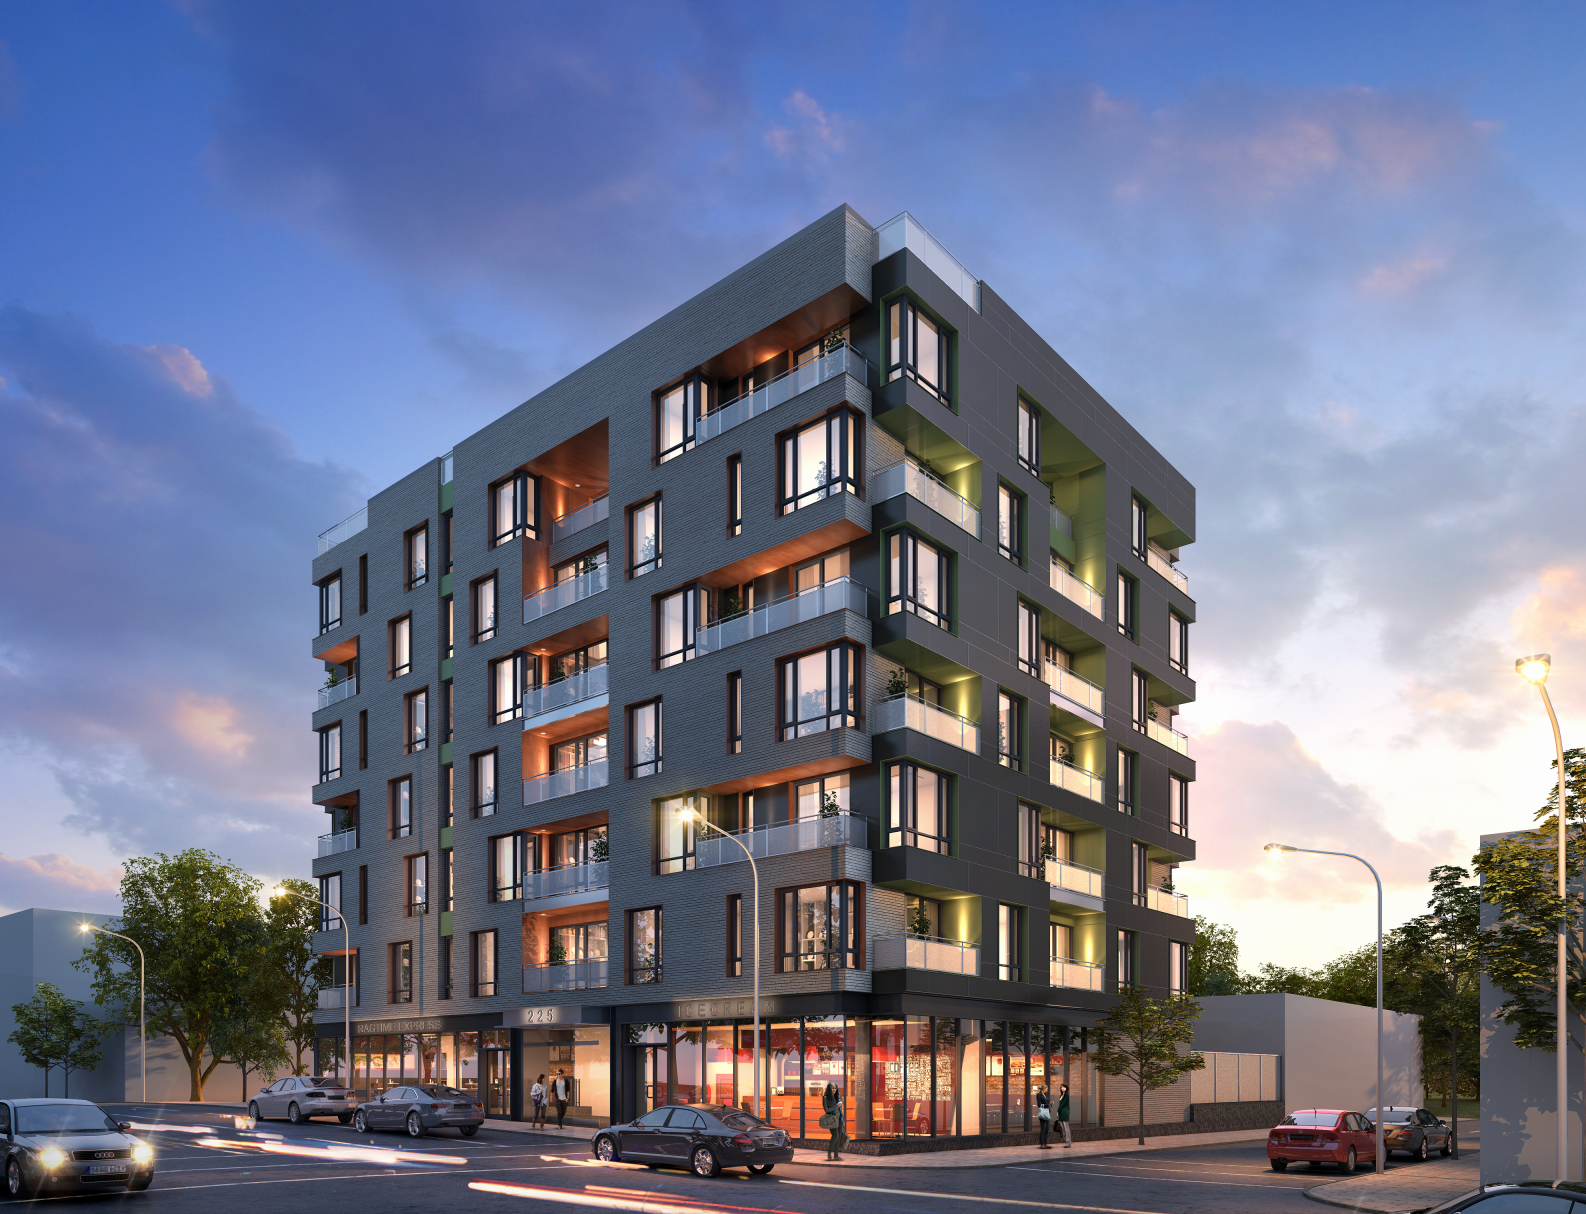 221 East 138th Street, rendering by Michael Muroff Architect